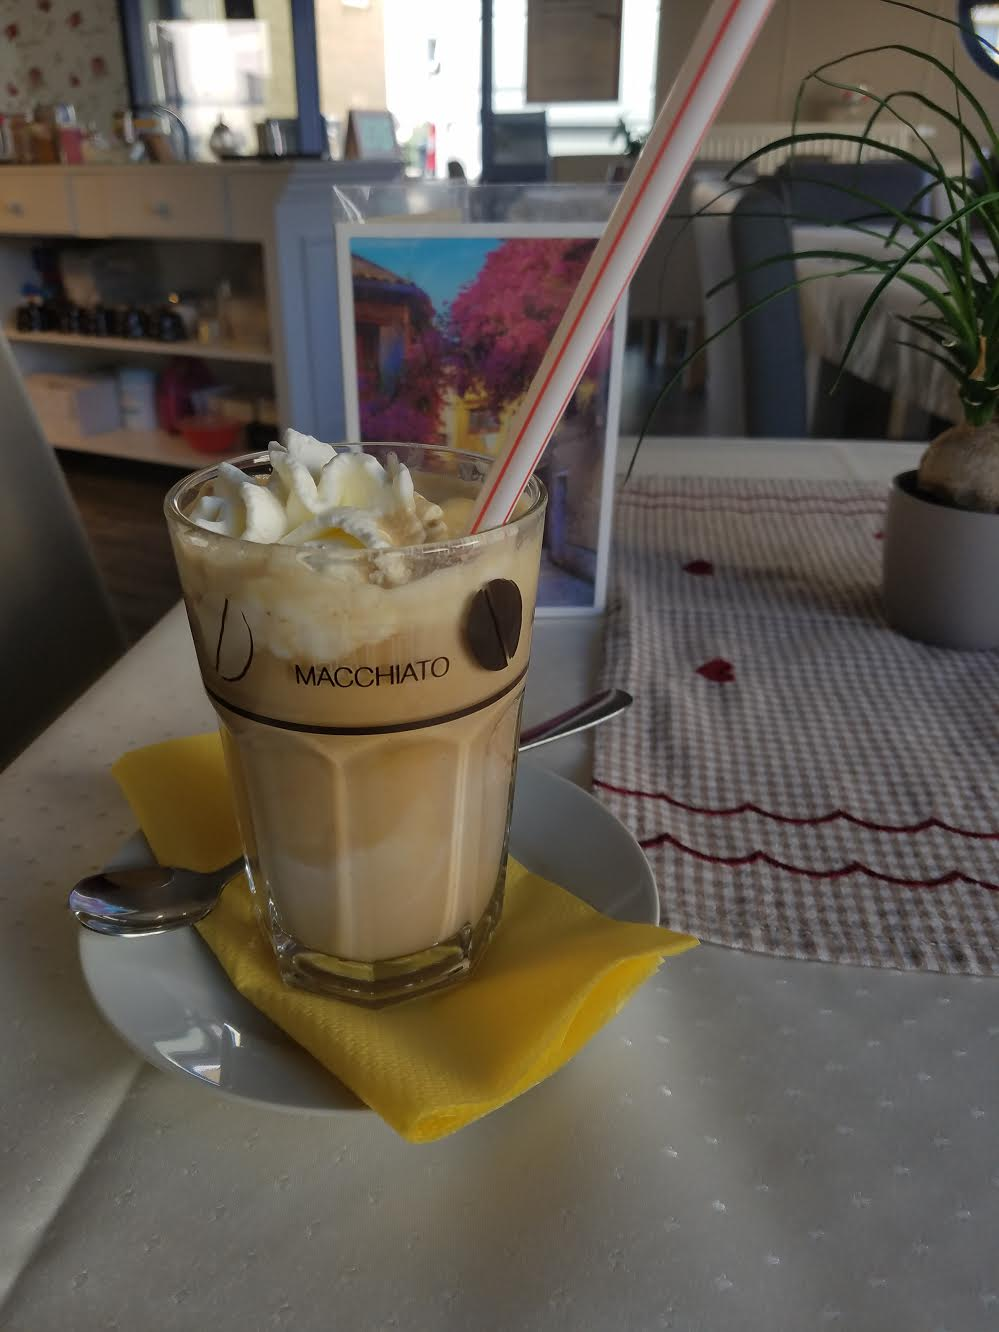 If you want a cold coffee in Germany, it comes with a scoop of ice cream in it. Not a bad deal!